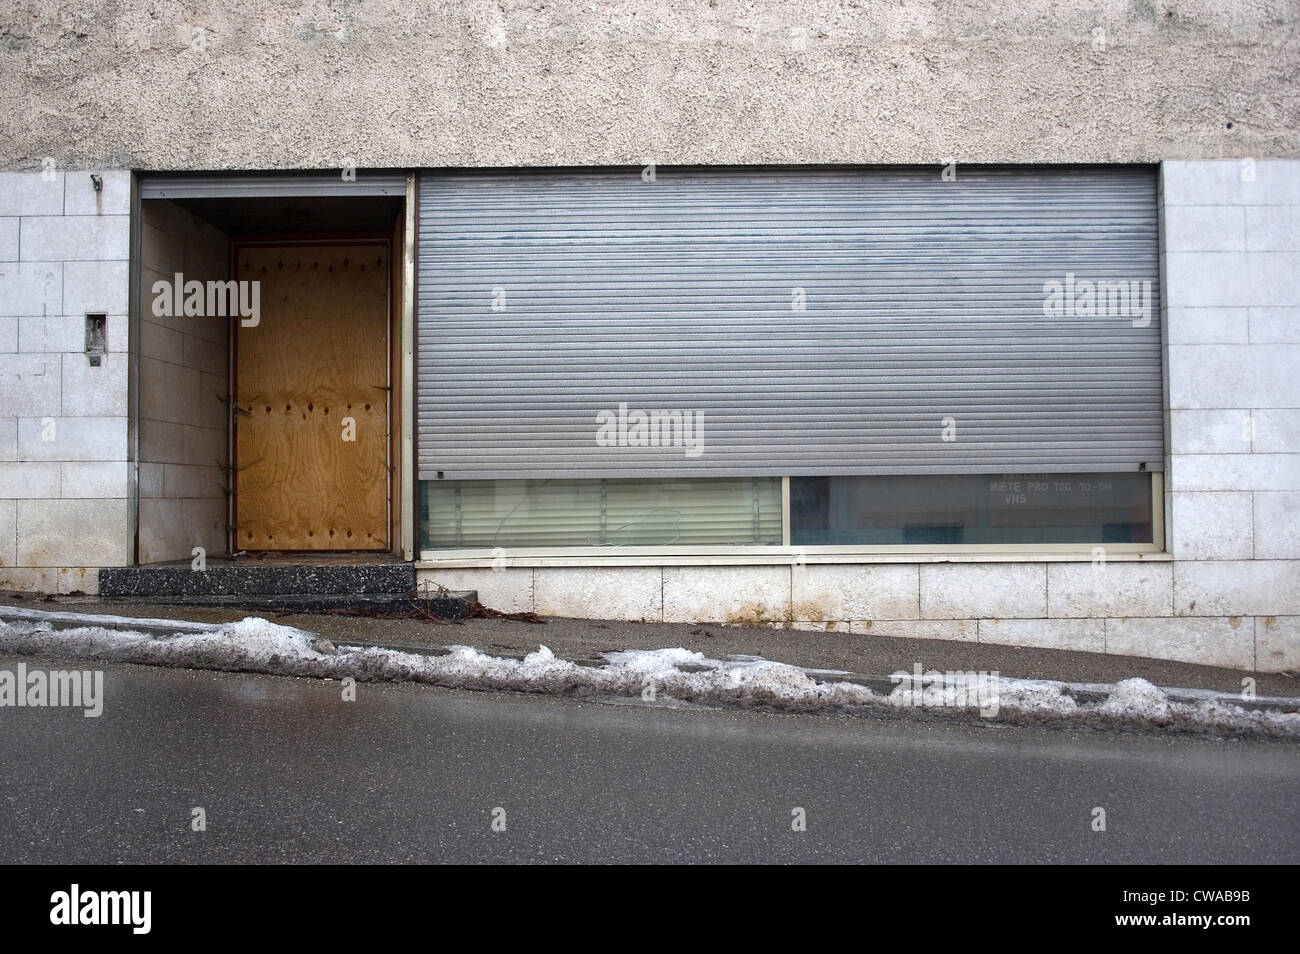 Riedlingen, closed business with lowered shutter - Stock Image